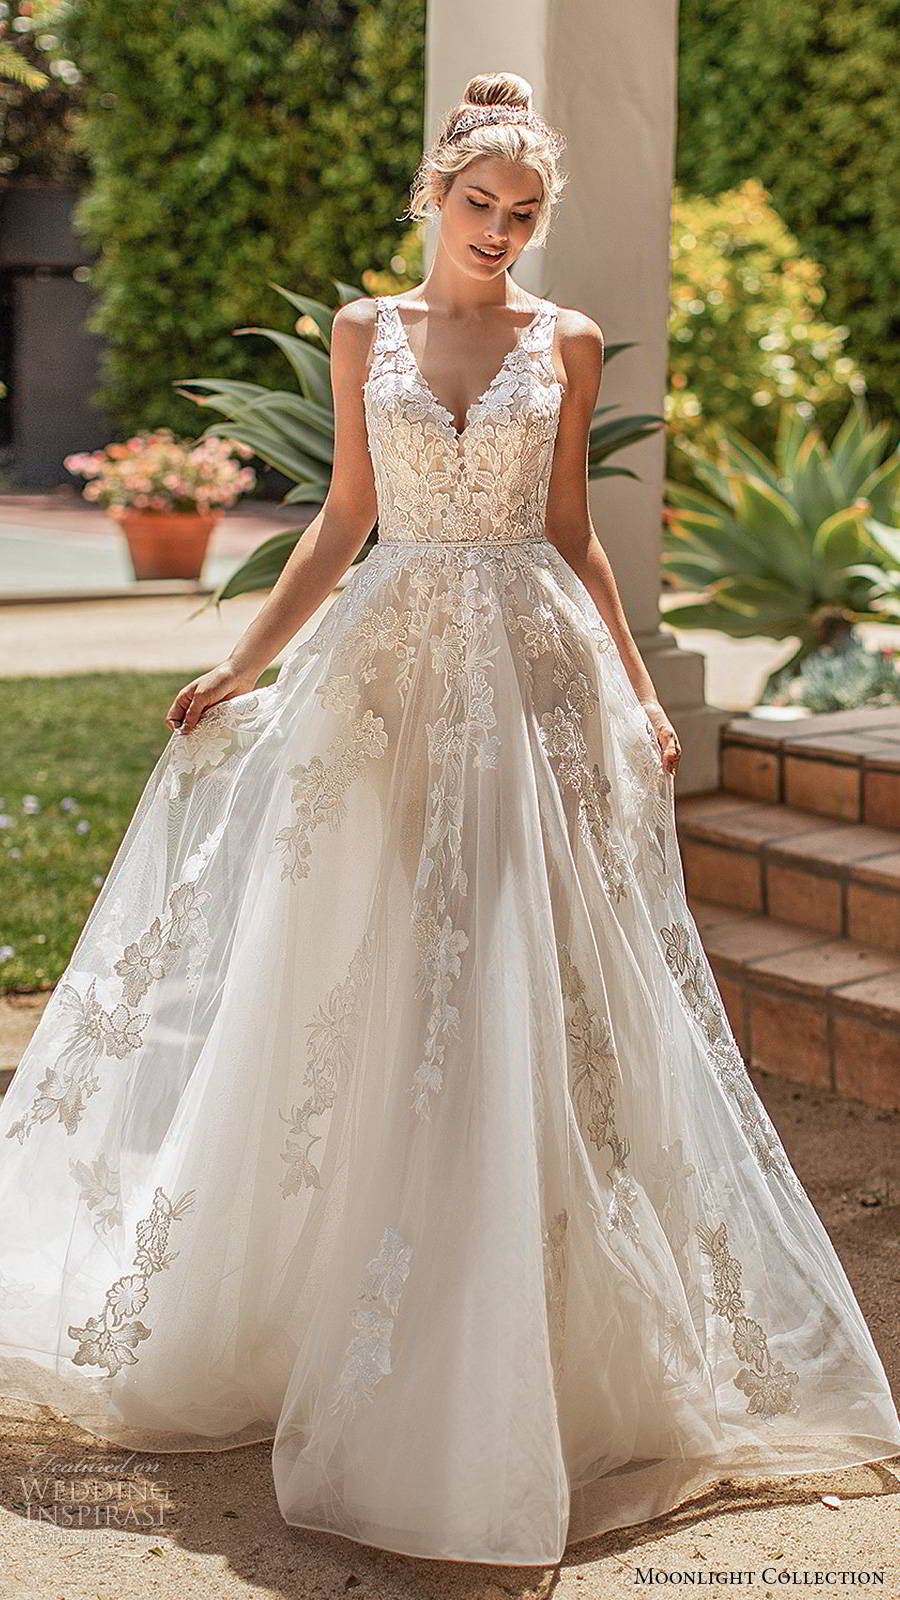 moonlight collection spring 2020 bridal sleeveless sheer straps v neckline fully embellished romantic a line ball gown wedding dress illusion back chapel train (10) mv